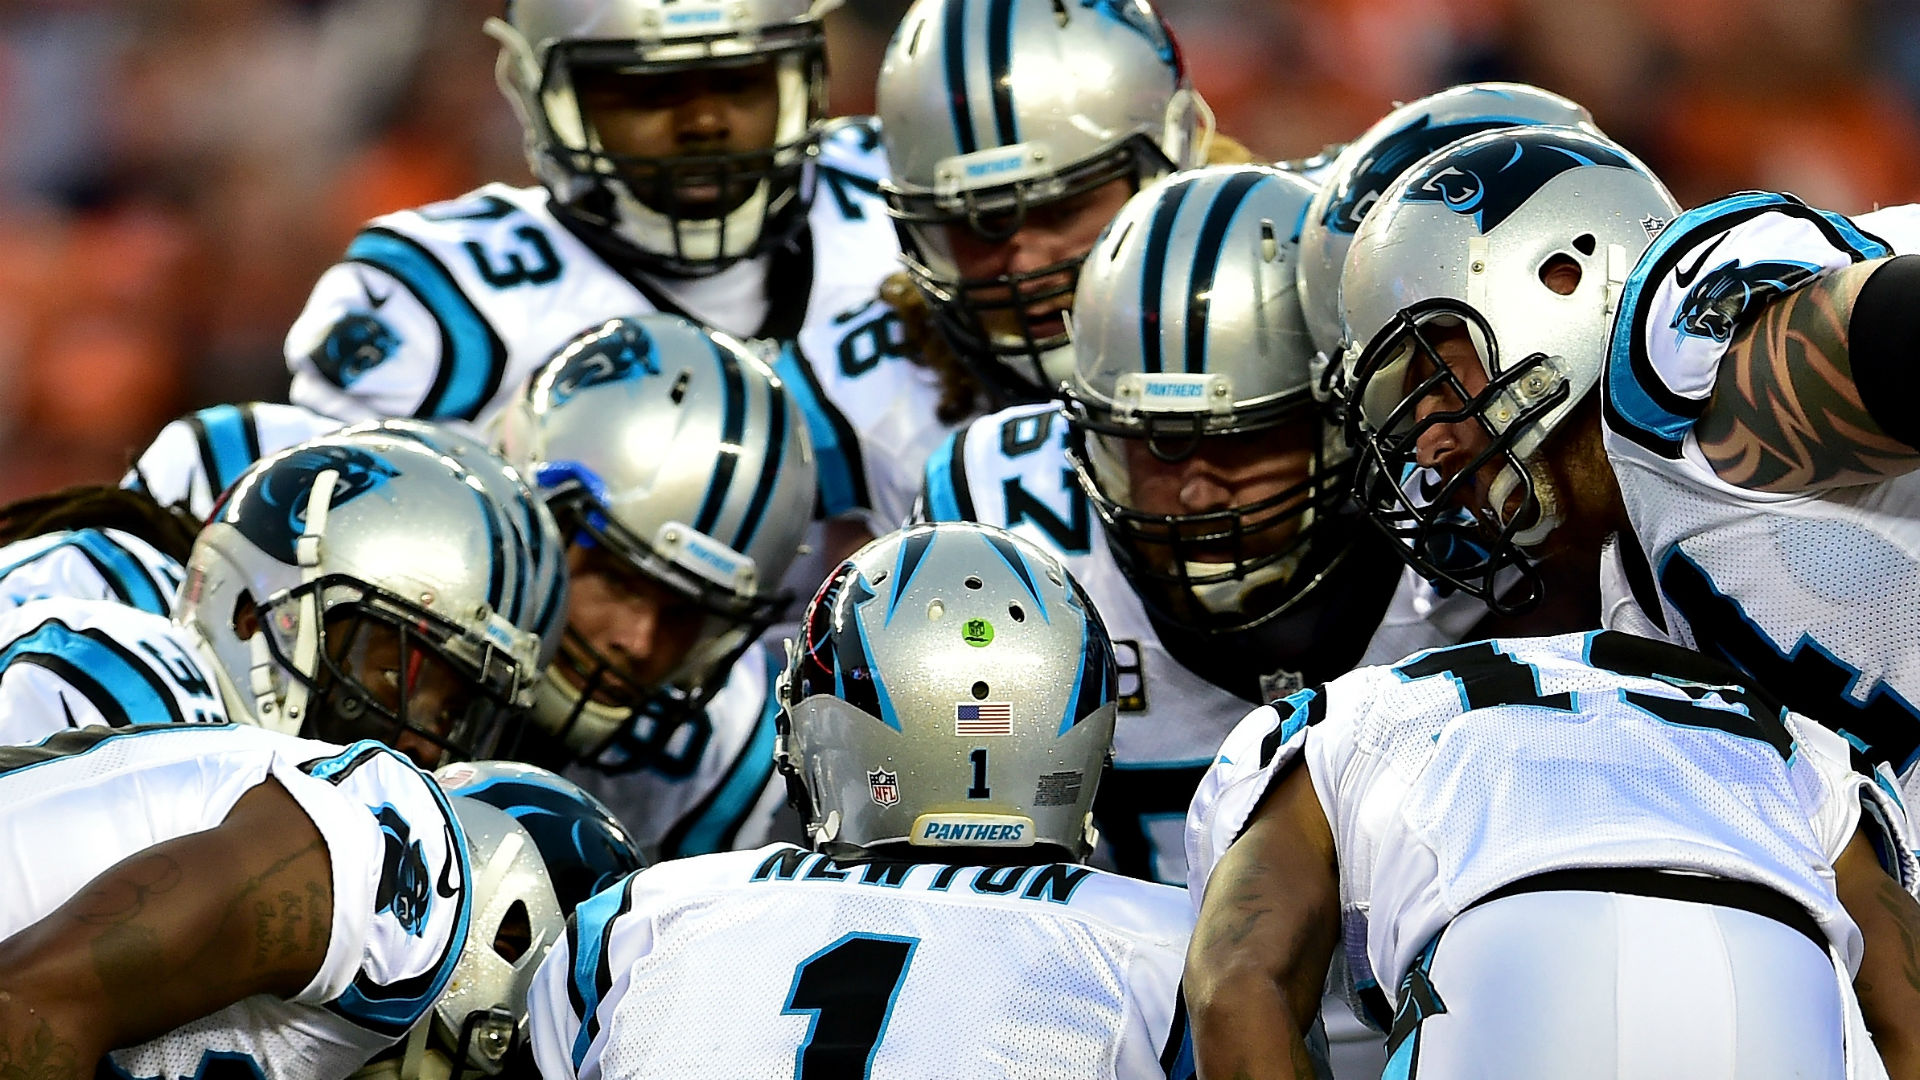 Panthers-huddle-092116-Getty-FTR.jpg